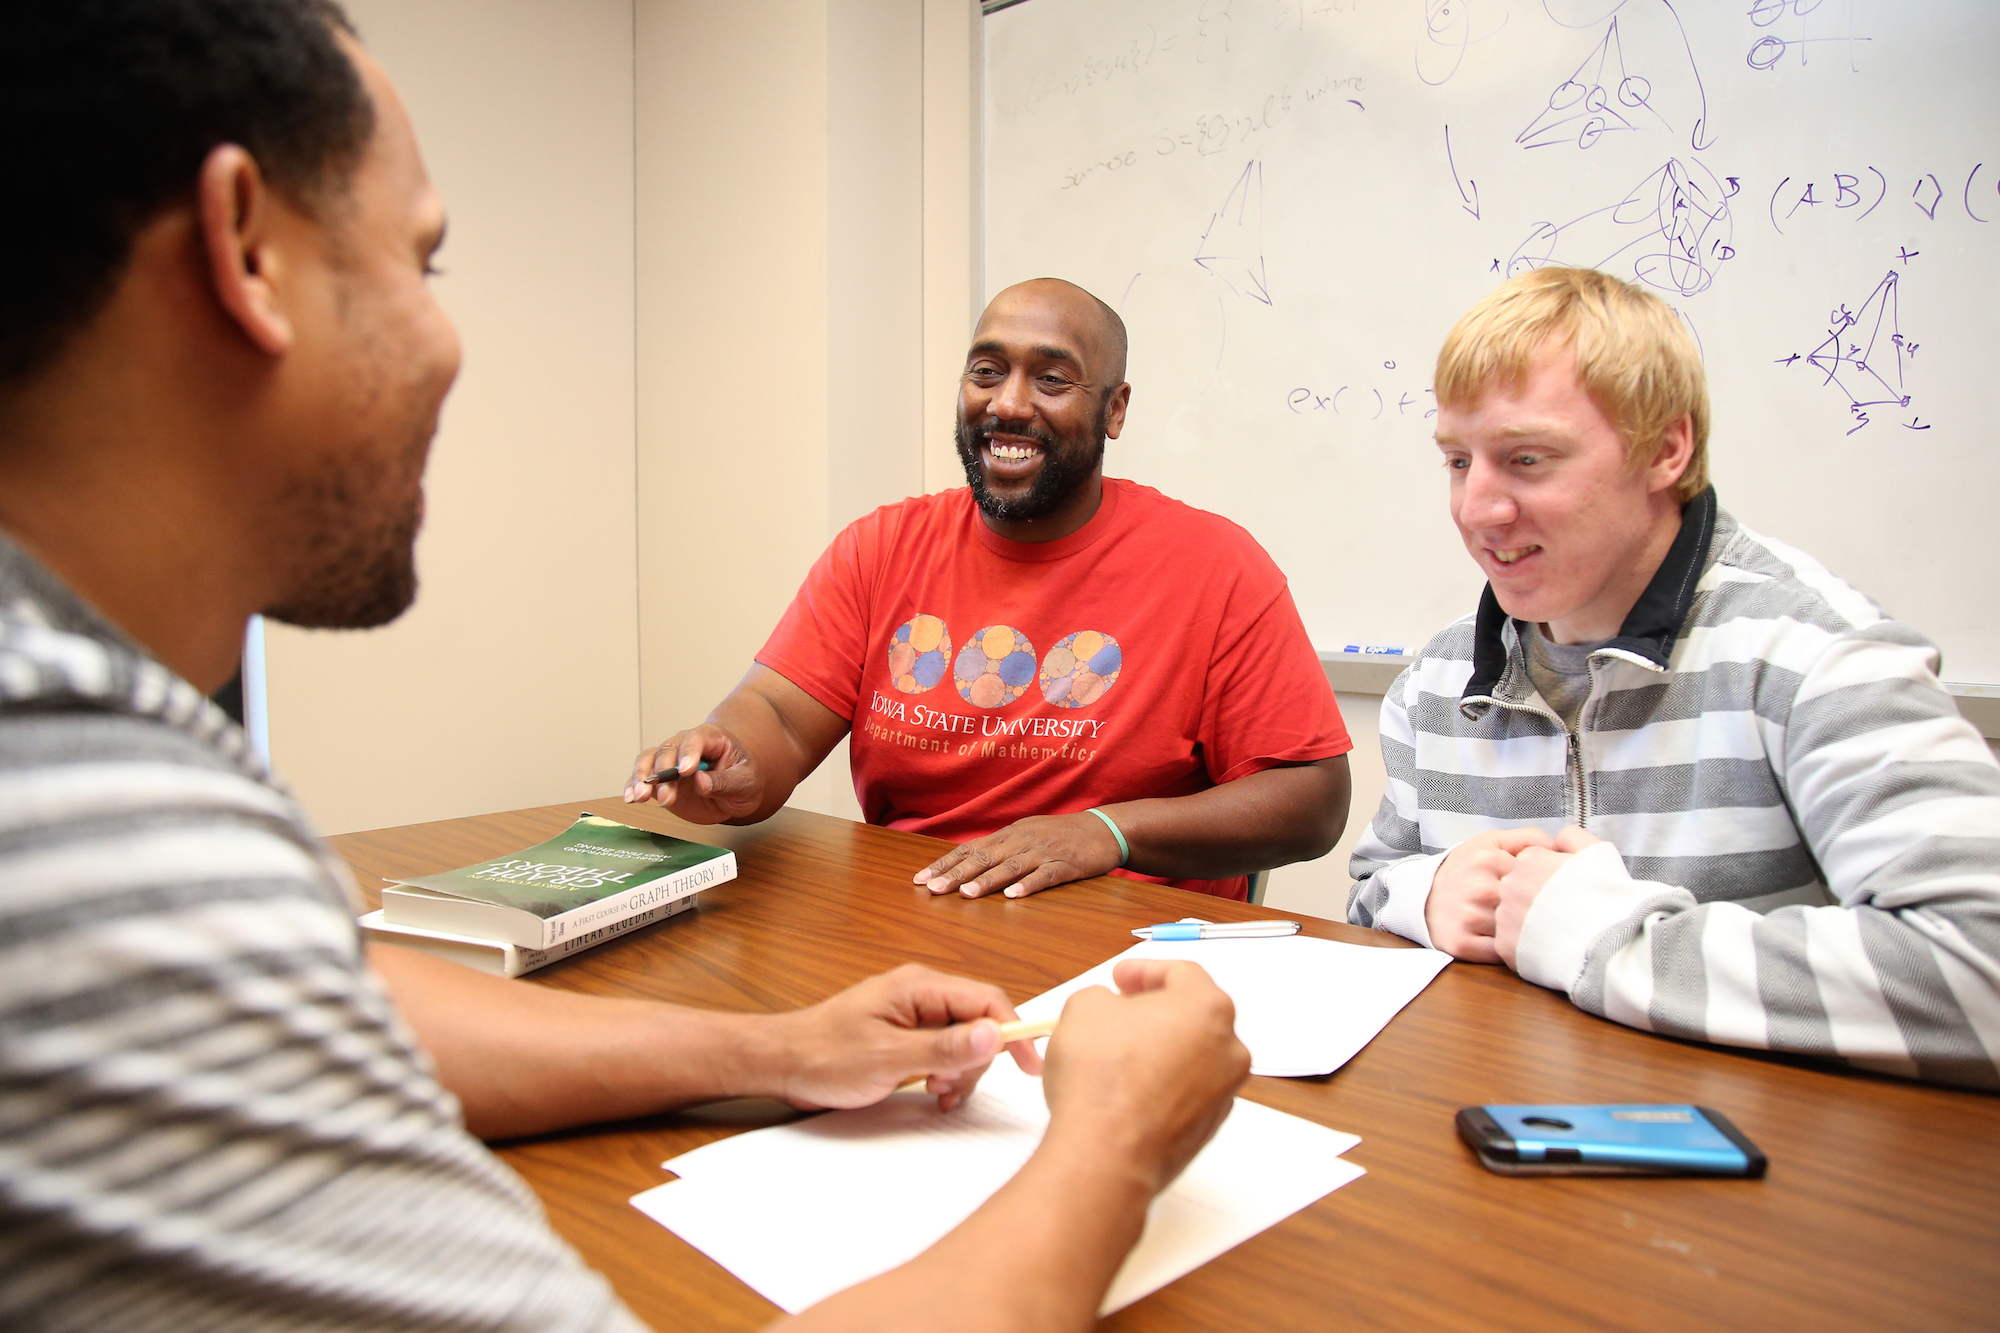 Michael Young, assistant professor of mathematics, in his office at a table working on math problems with graduate students Derek Young and Alex Schulte.